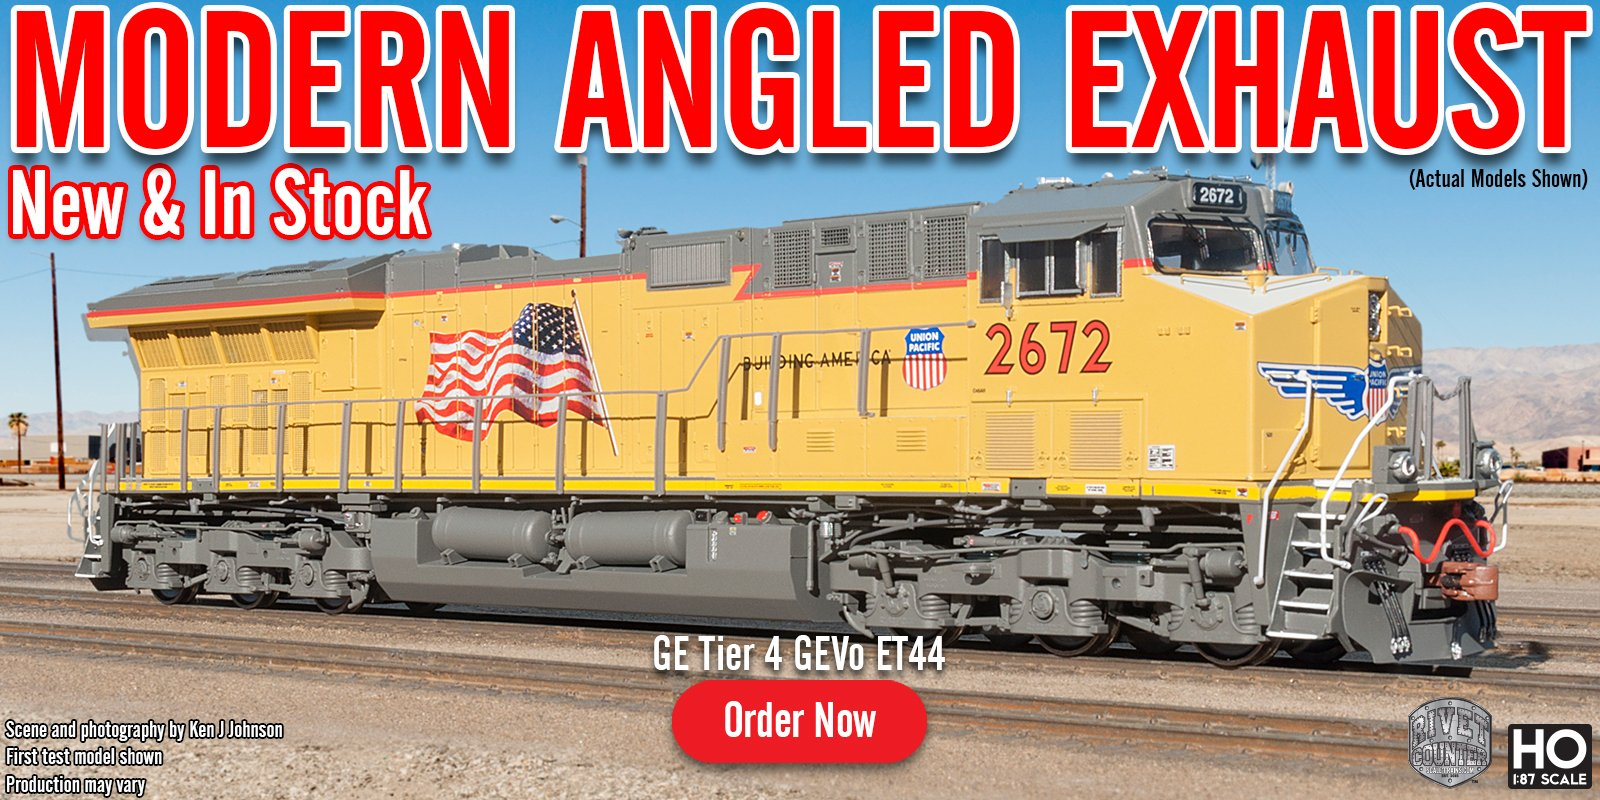 HO Scale Models in Stock at ScaleTrains.com